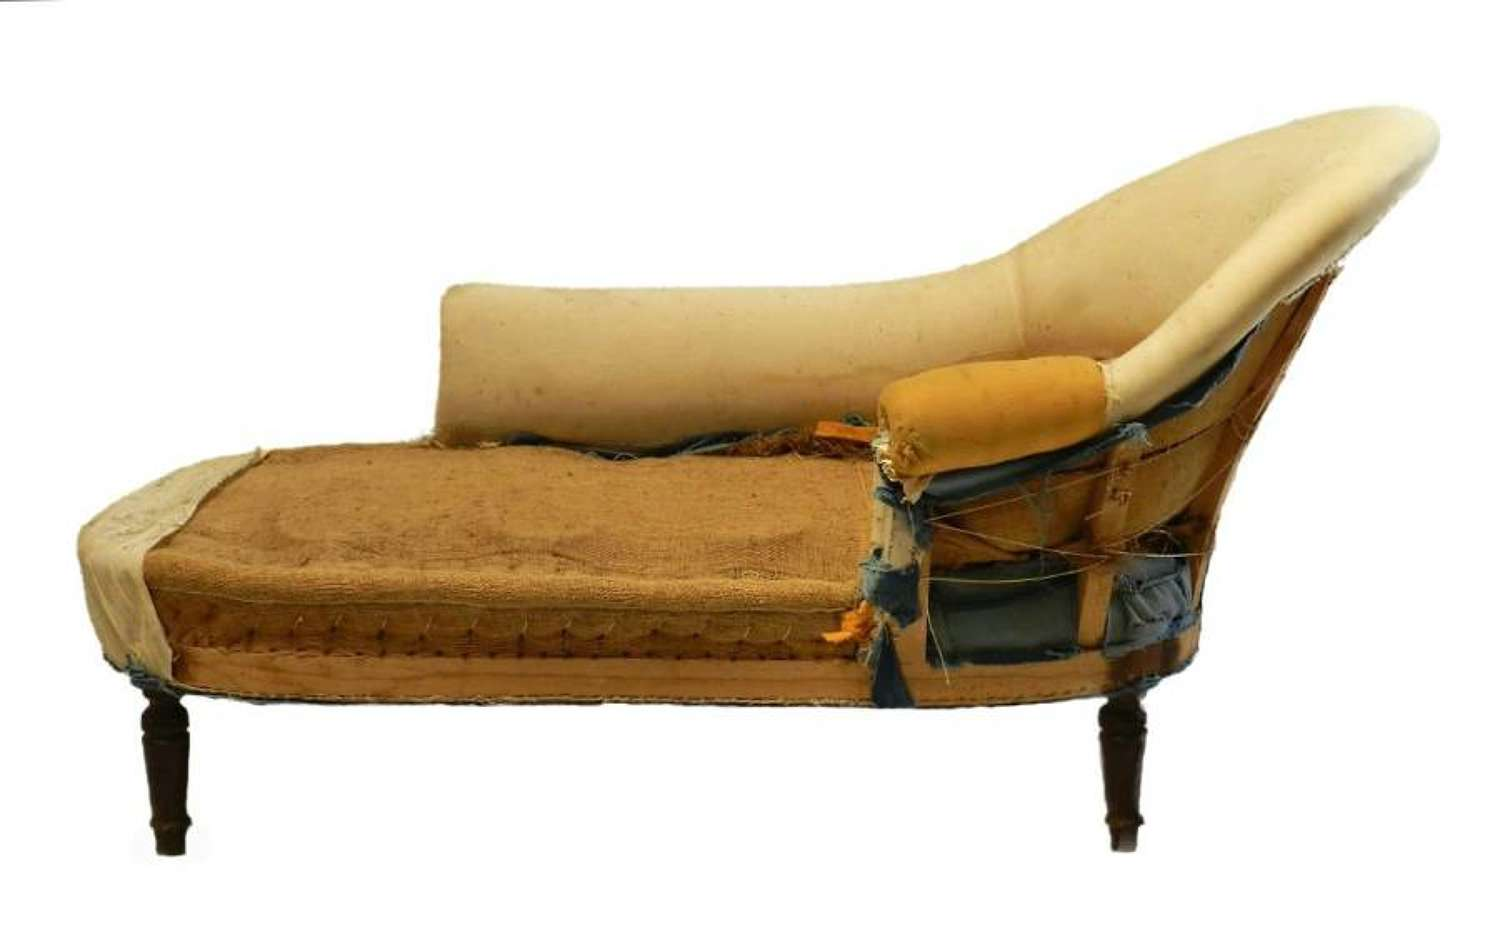 C19 French Chaise Longue Sofa to reupholster recover